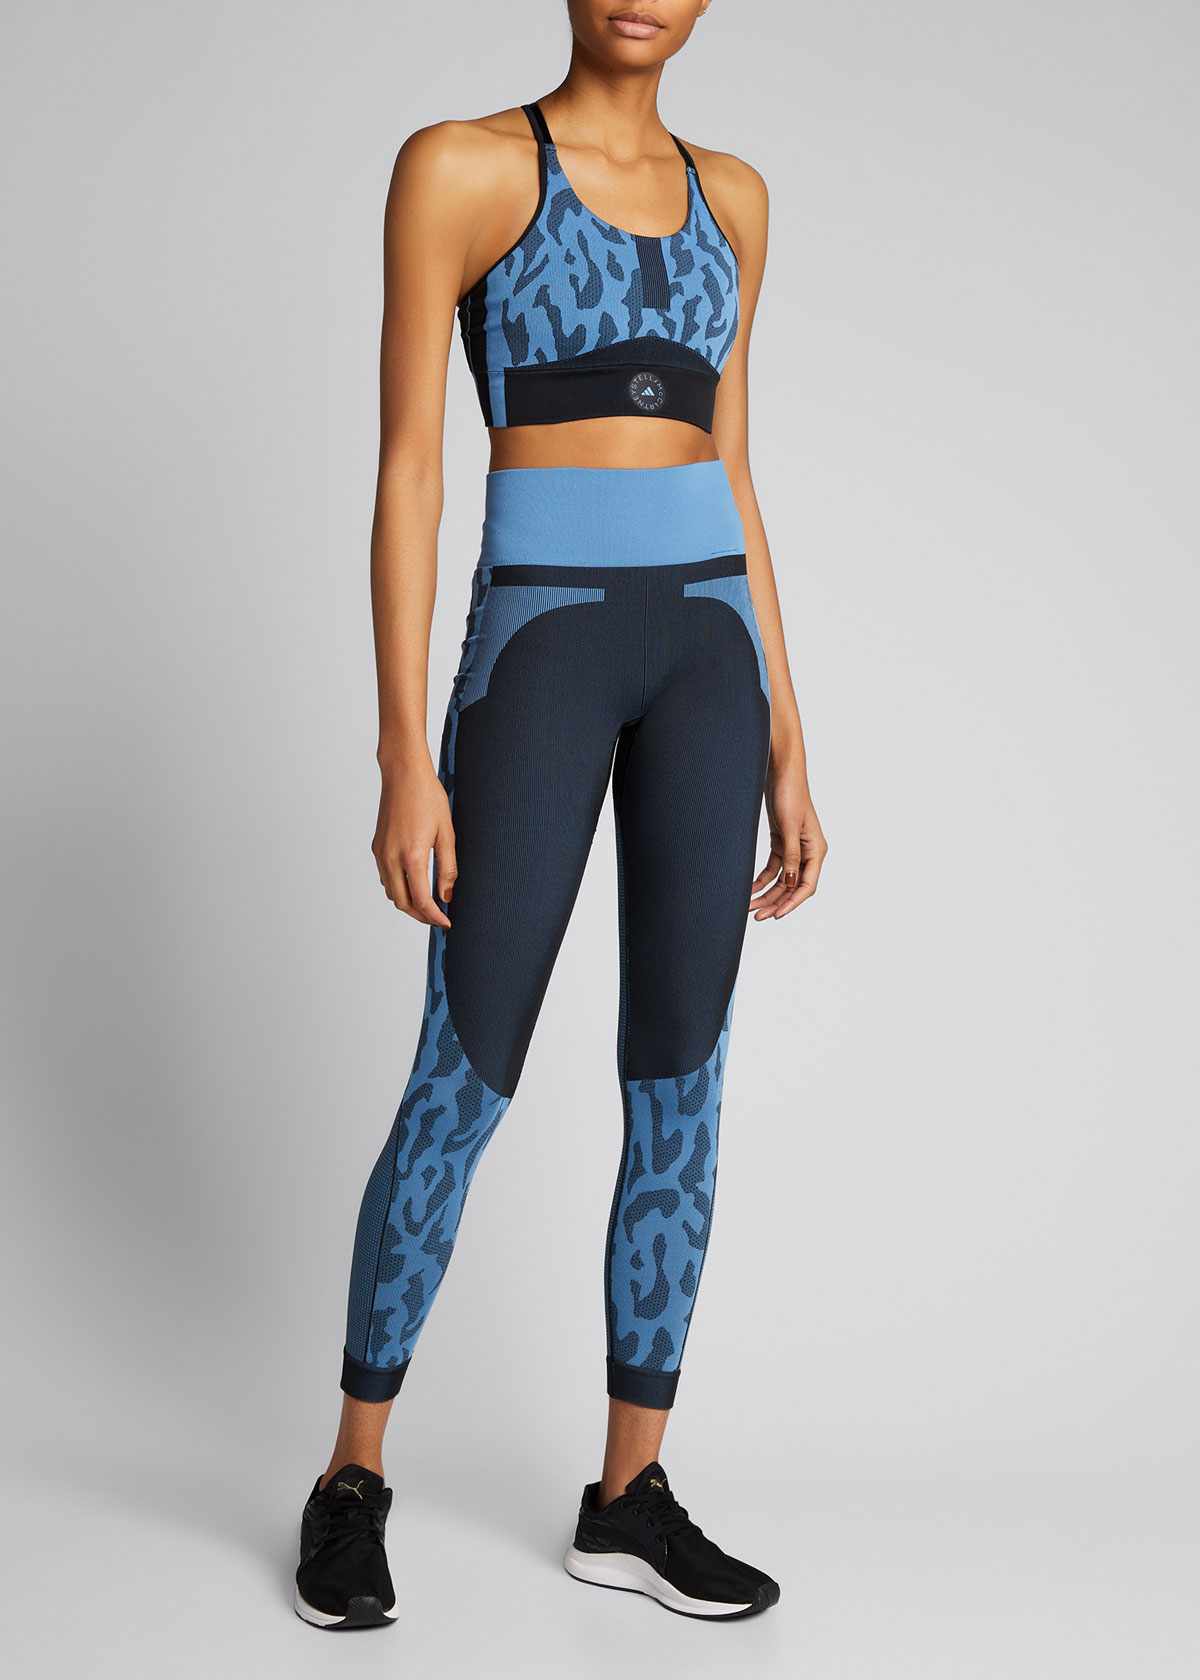 Adidas By Stella Mccartney TRUEPURPOSE CRISSCROSS ANIMAL-PRINT SPORTS BRA